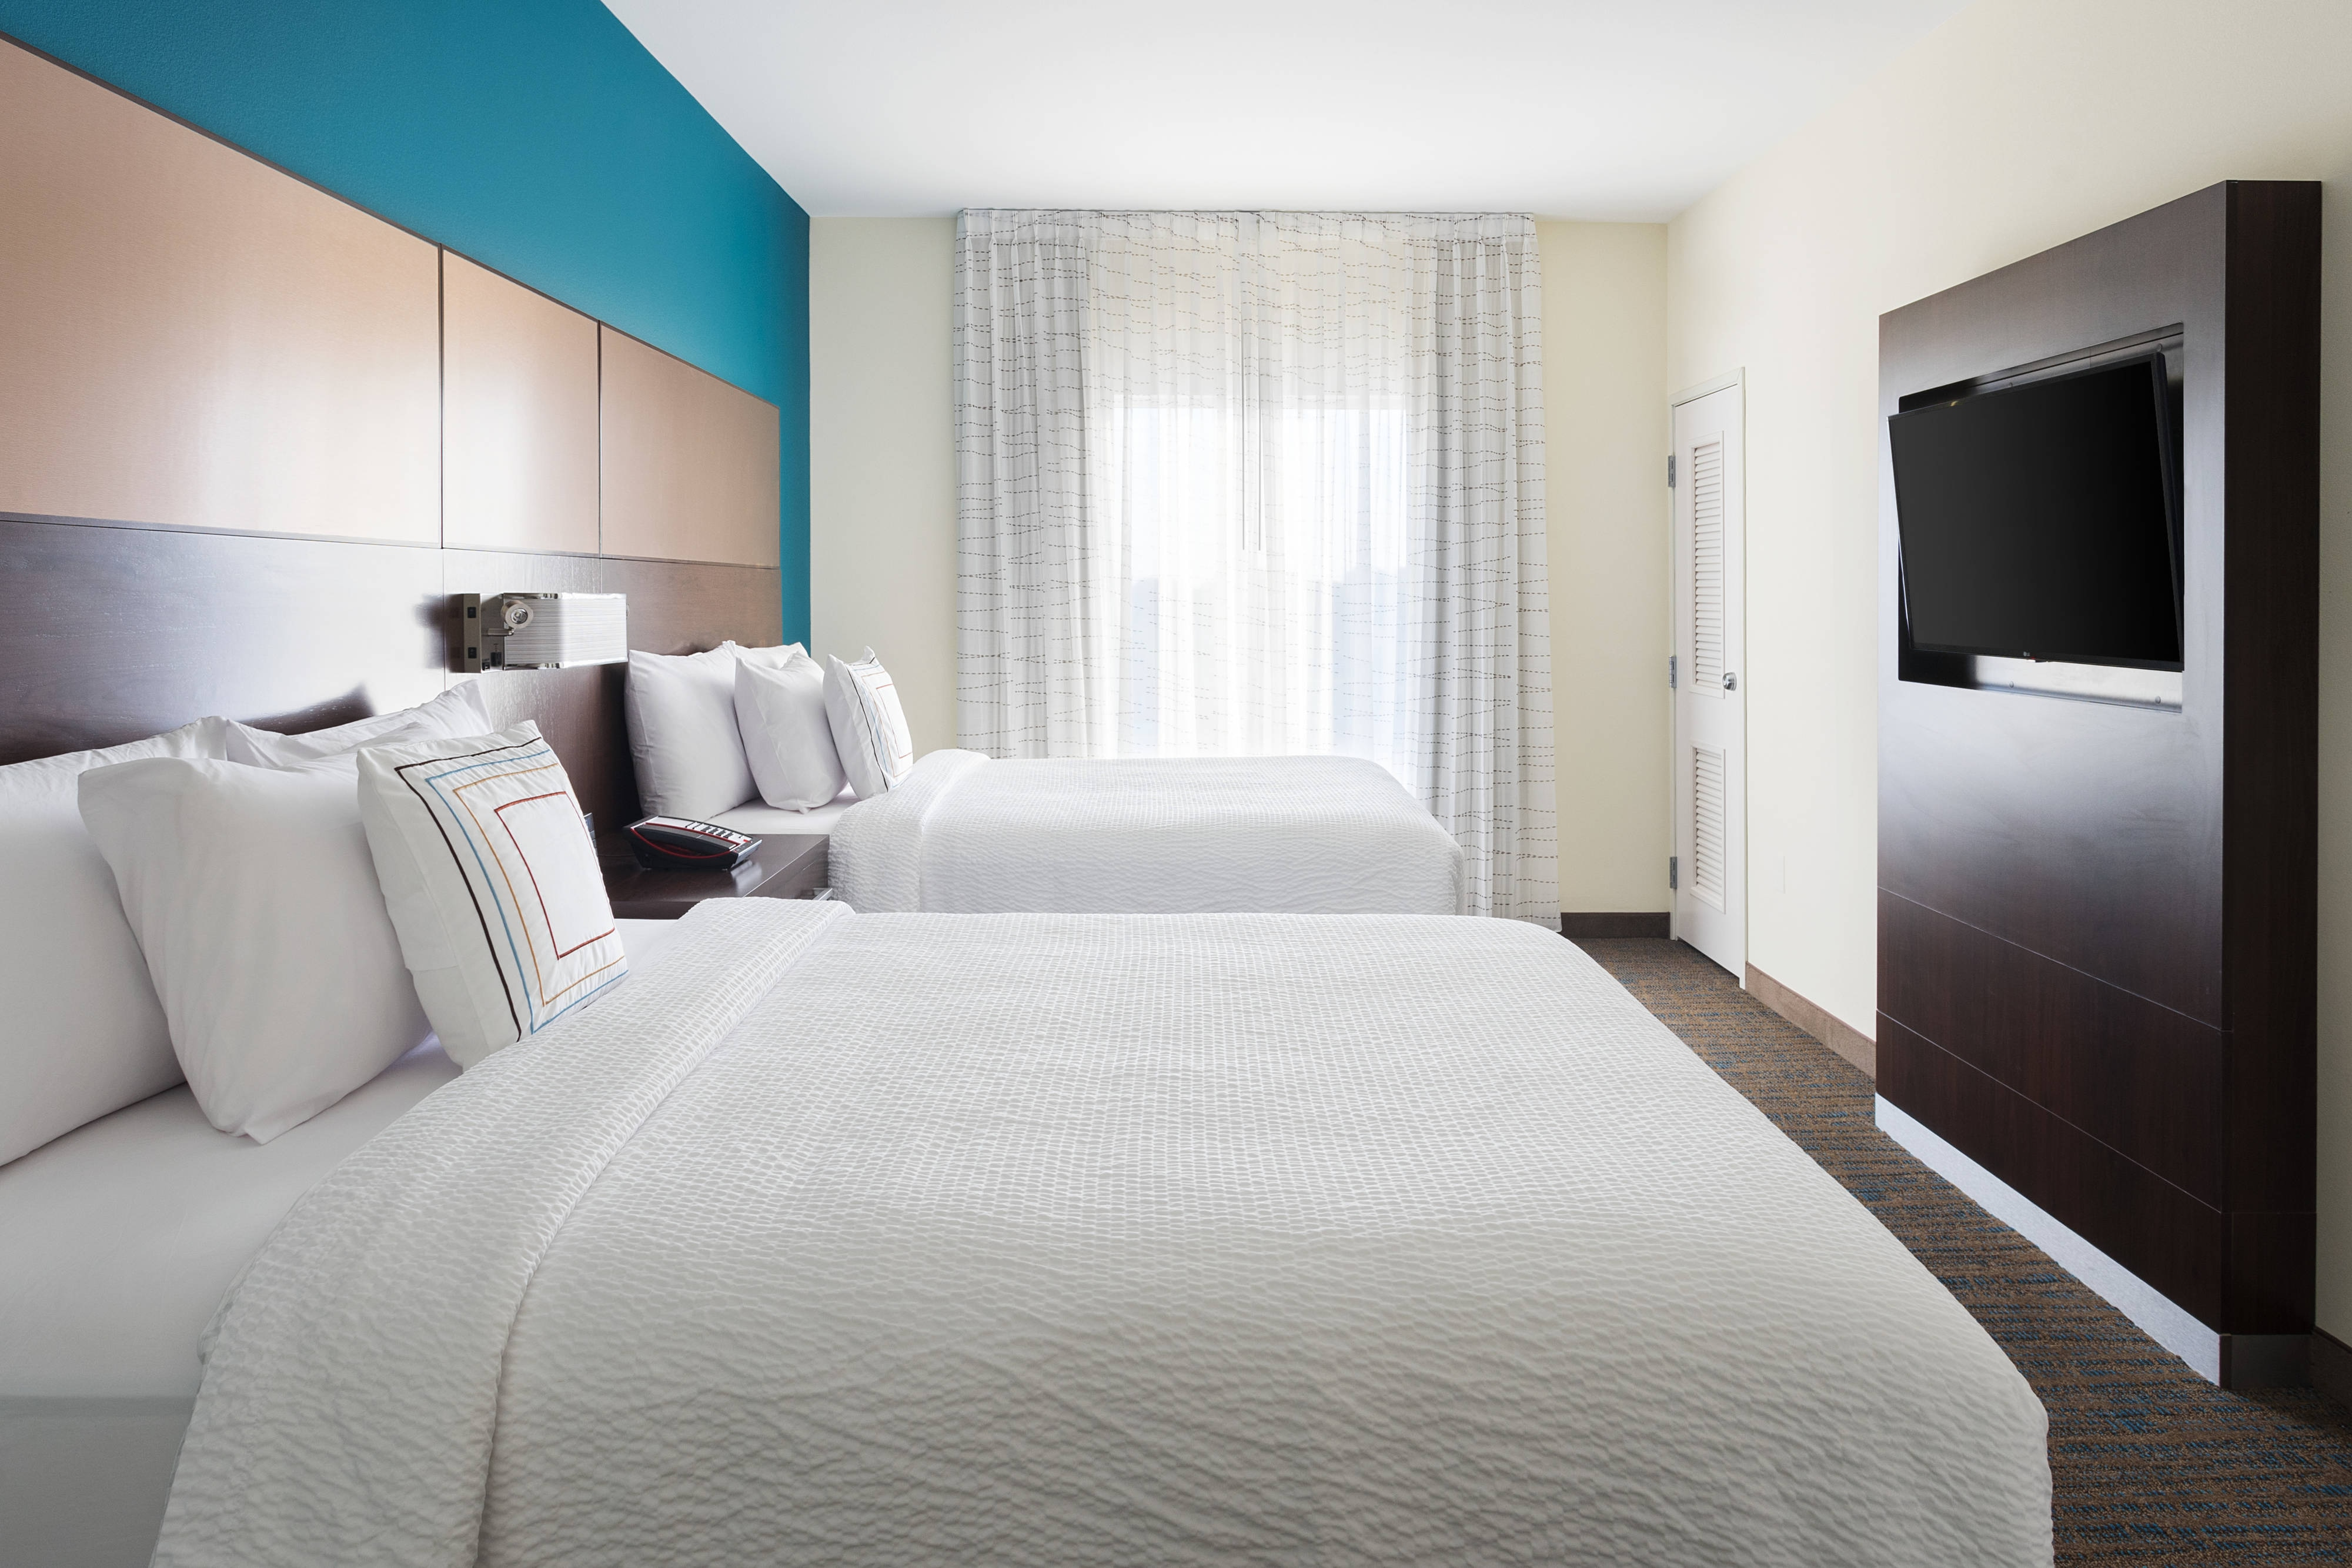 Residence Inn Houston West Beltway 8 At Clay Road Hotel Amenities Hotel Room Highlights